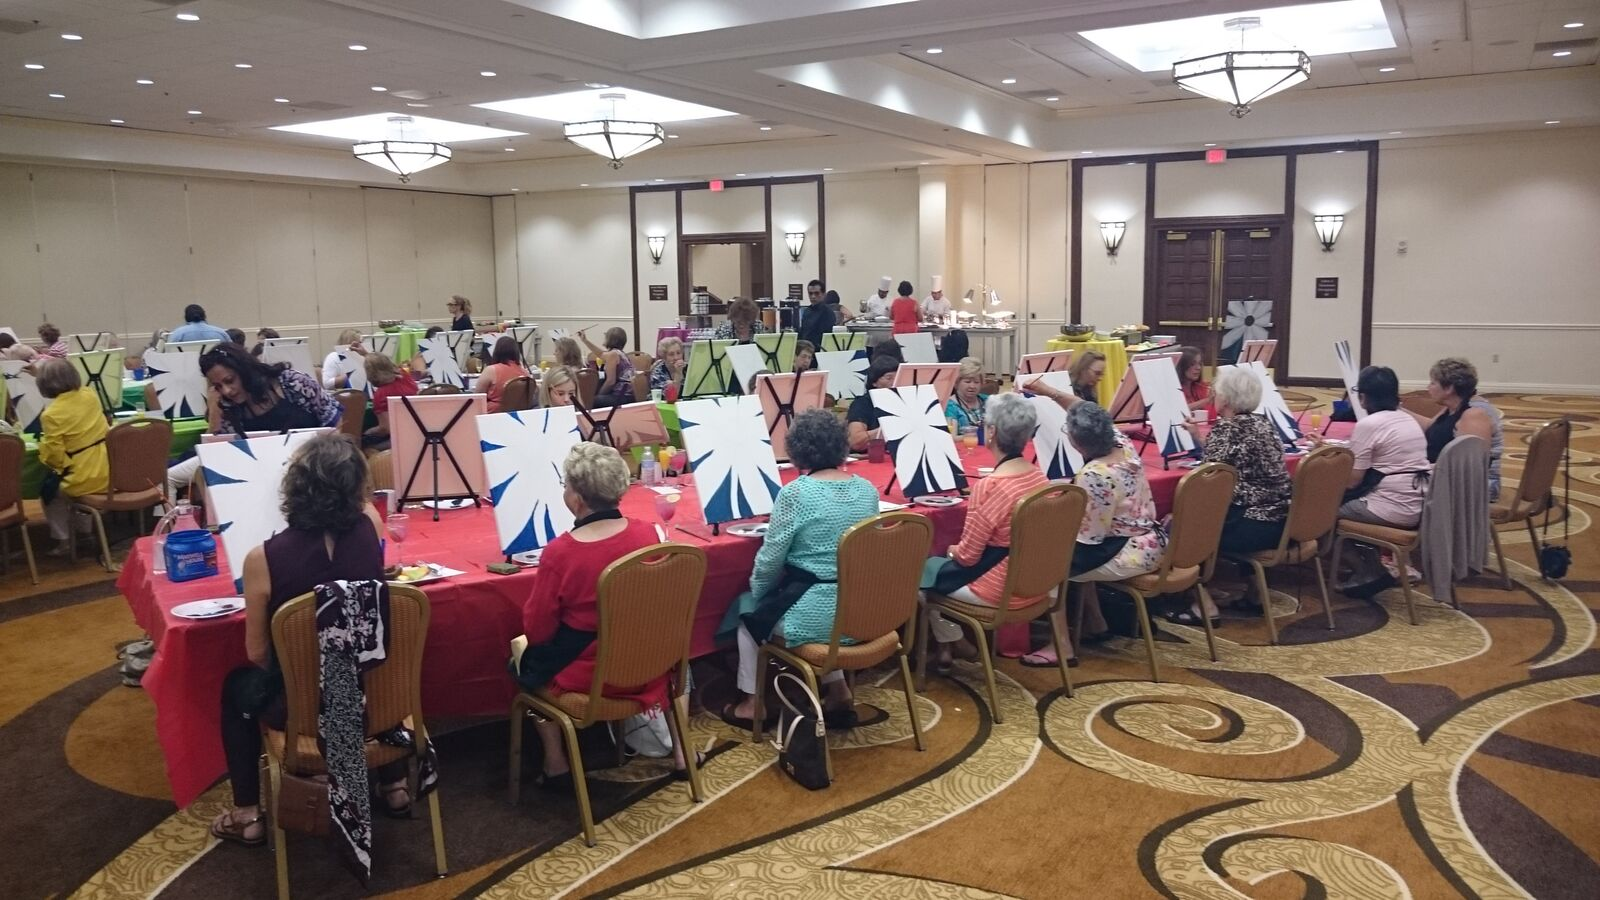 This Corporate Event was held at the Hilton on the River Walk in San Antonio!  #PaintParty in San Antonio